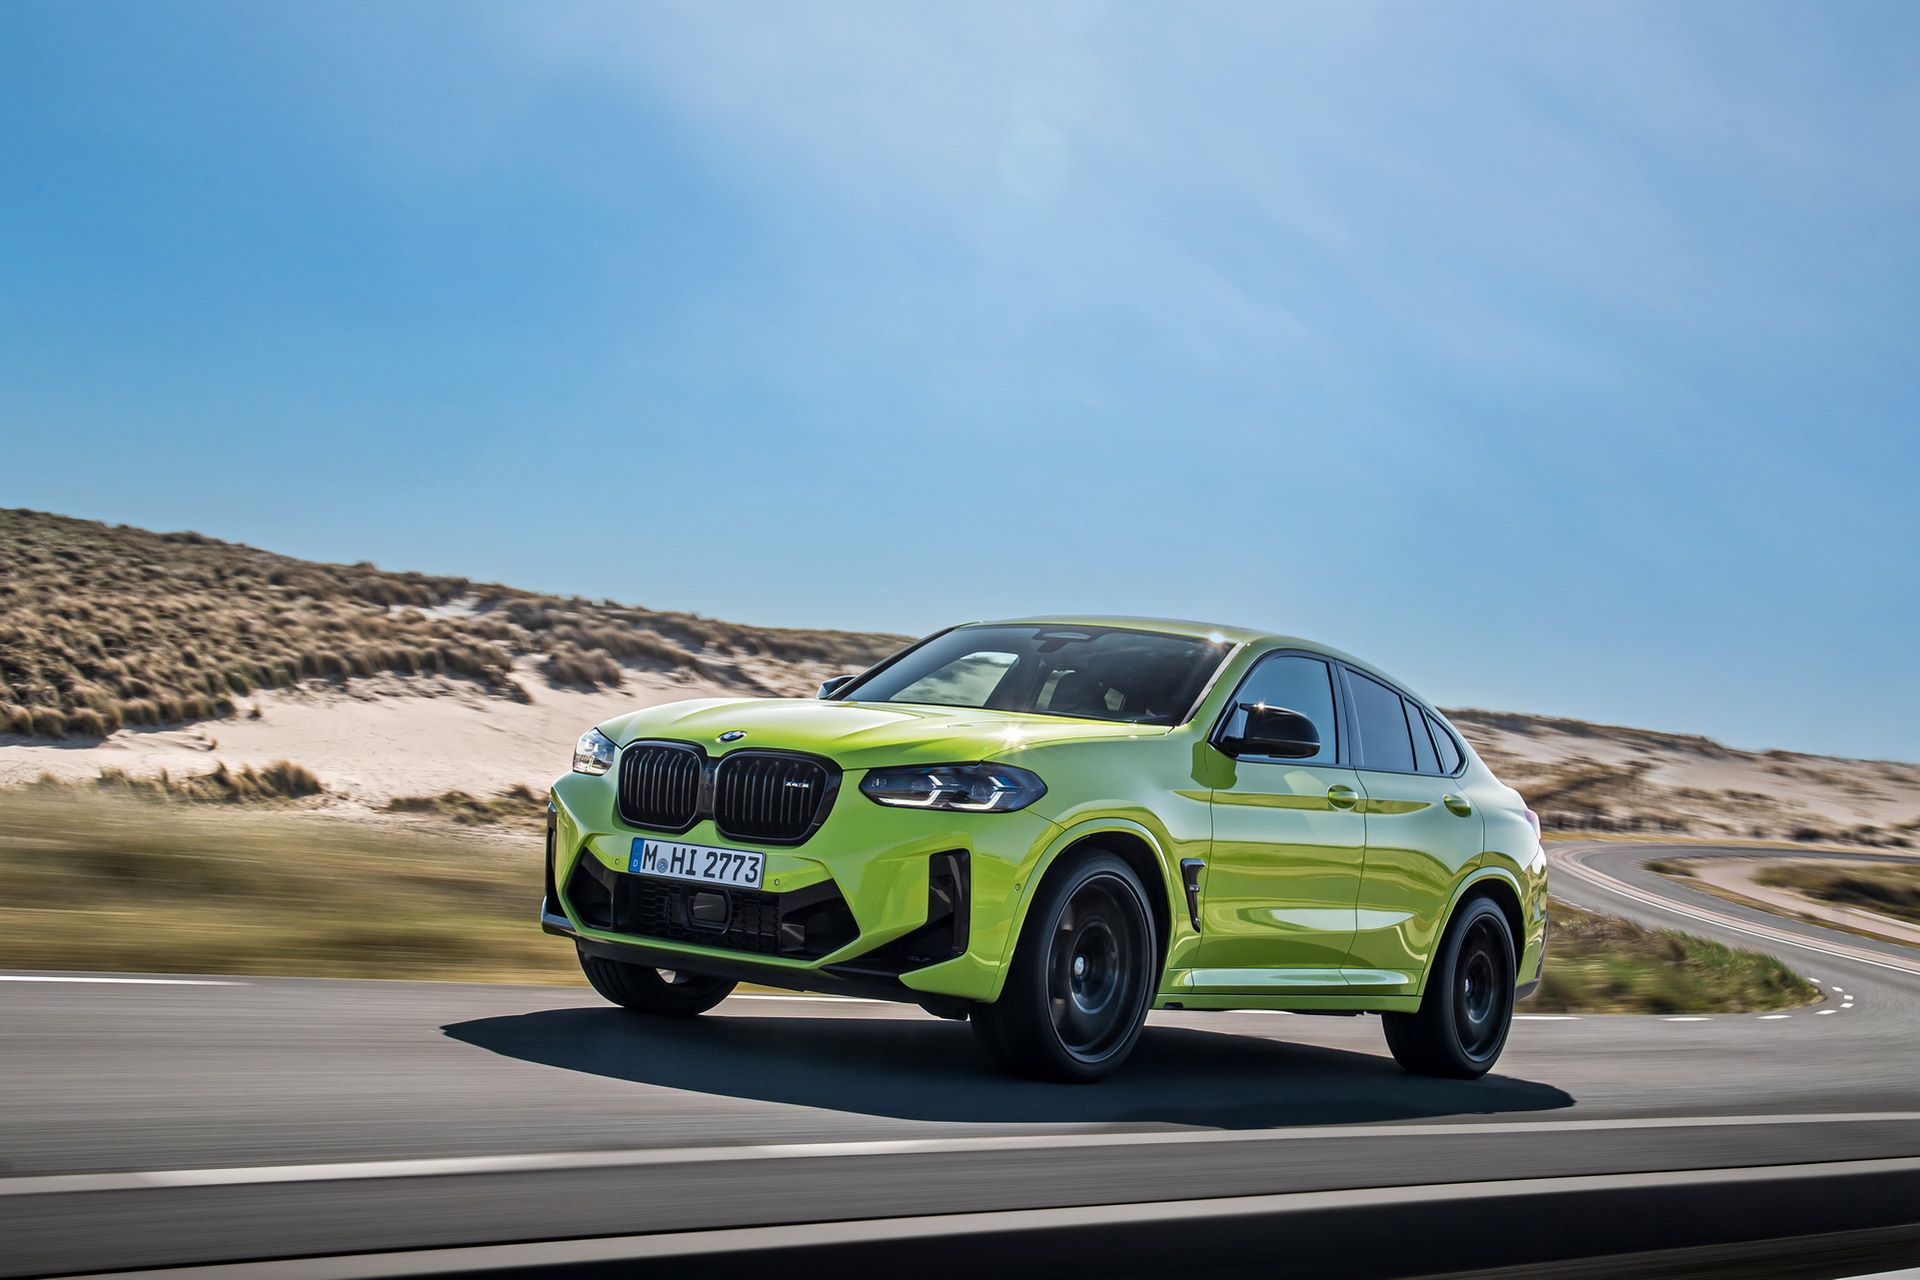 BMW-X3-M-X4-M-Competition-22